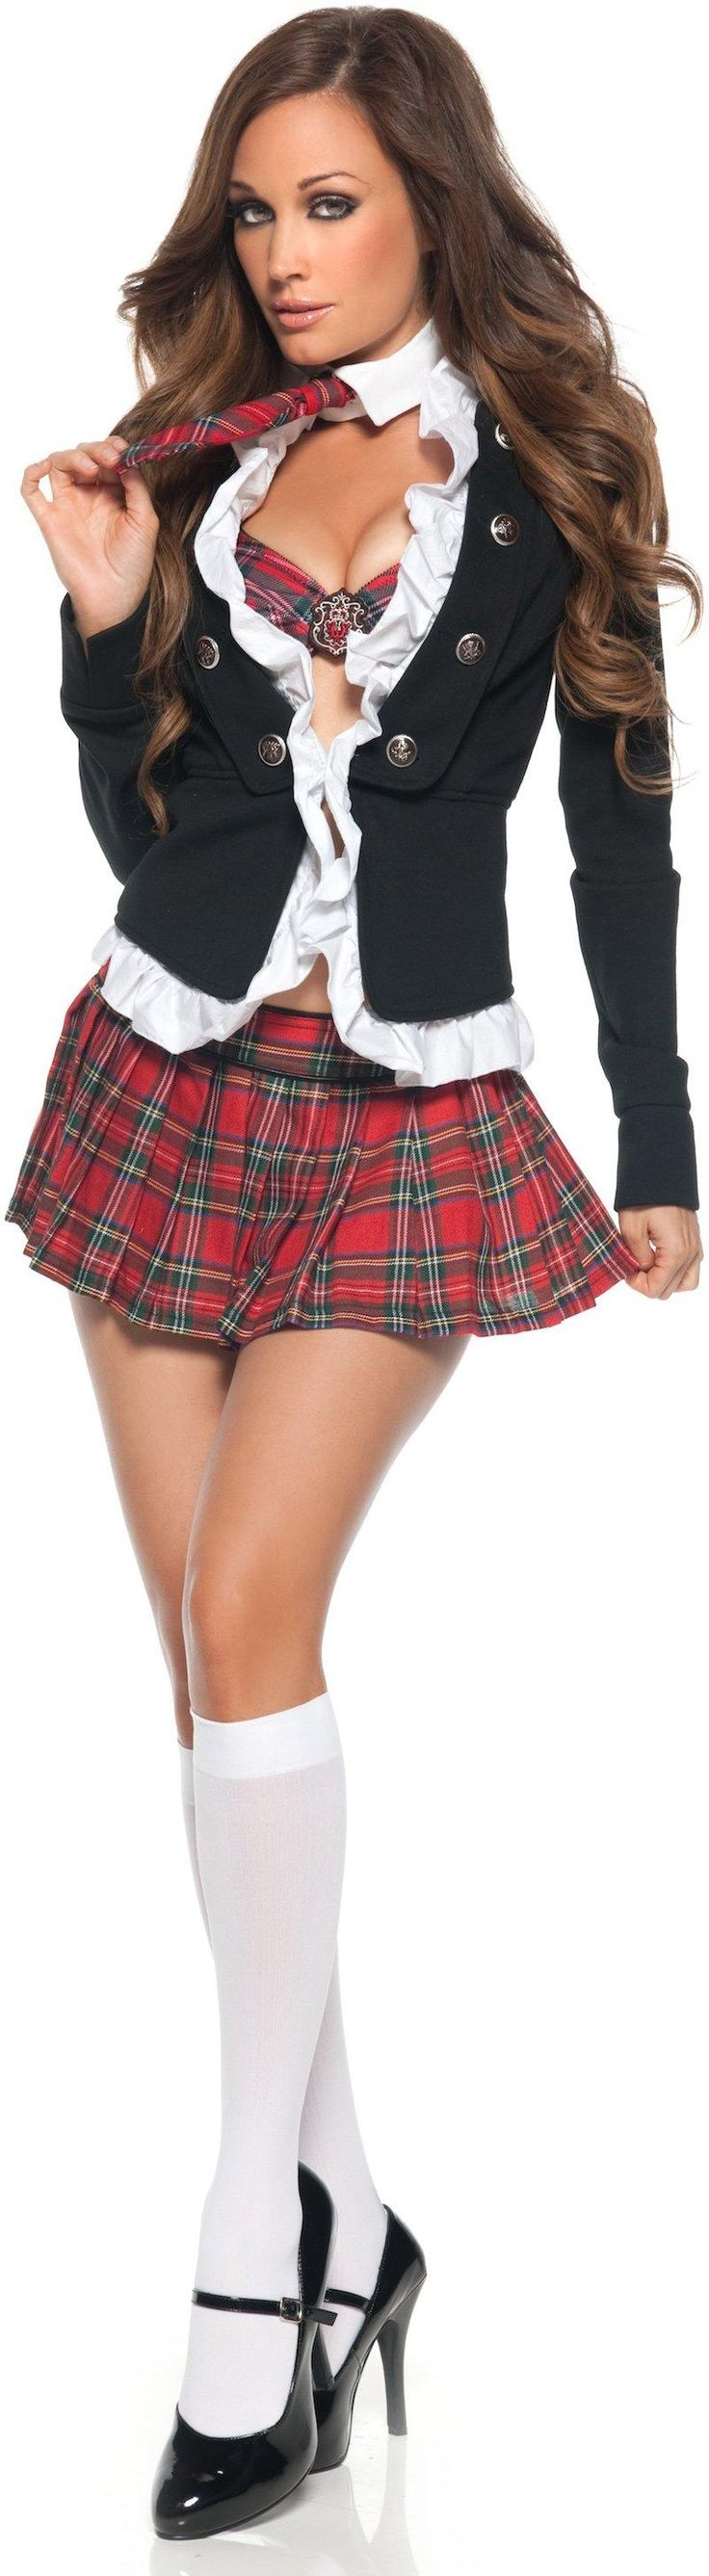 Prep school girl outfit-4216